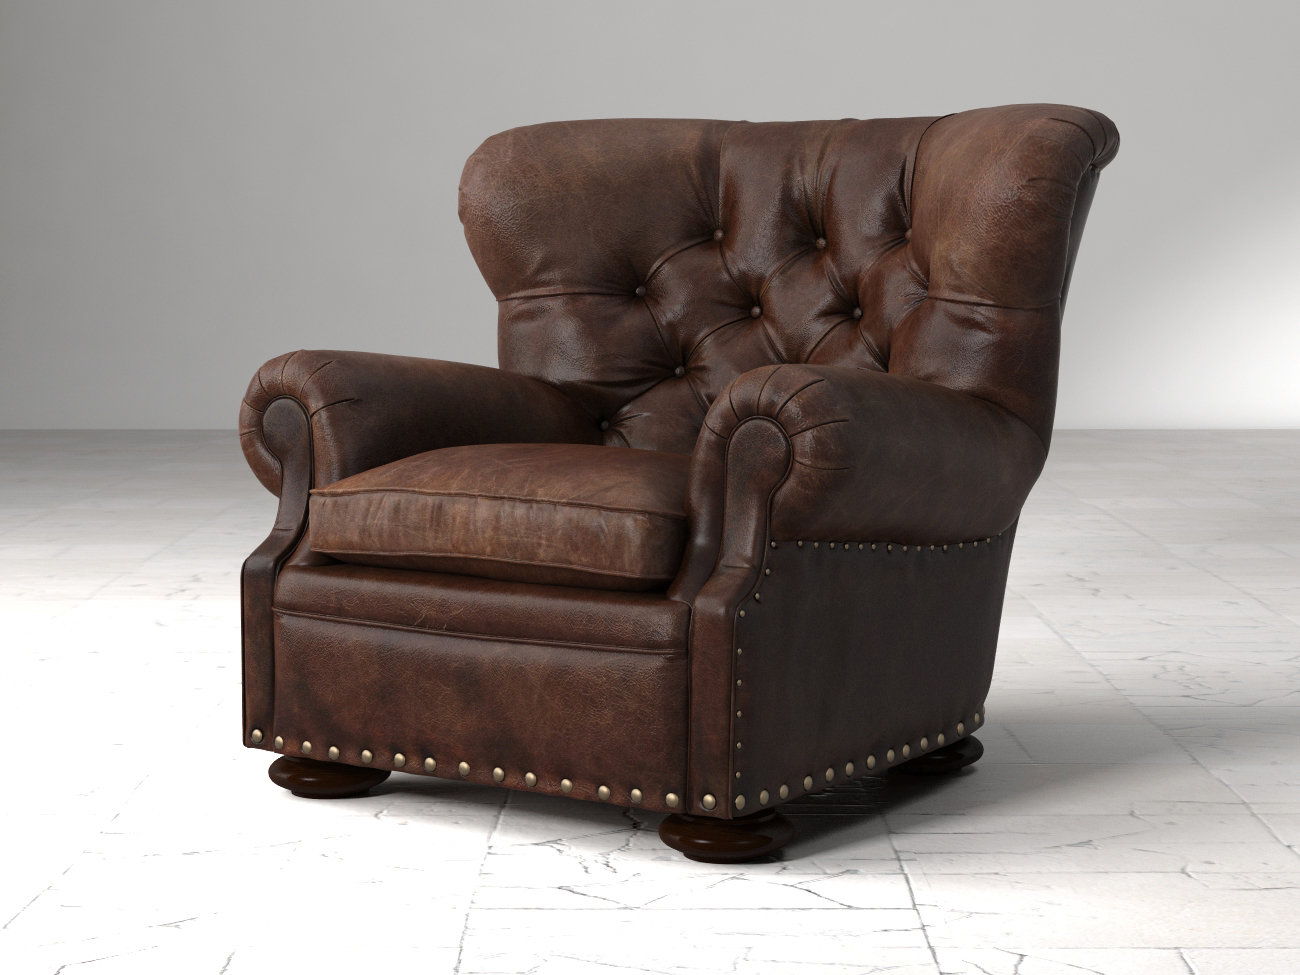 Restoration Hardware Leather Chairs Churchill Leather Chair With Nailheads 3d Model